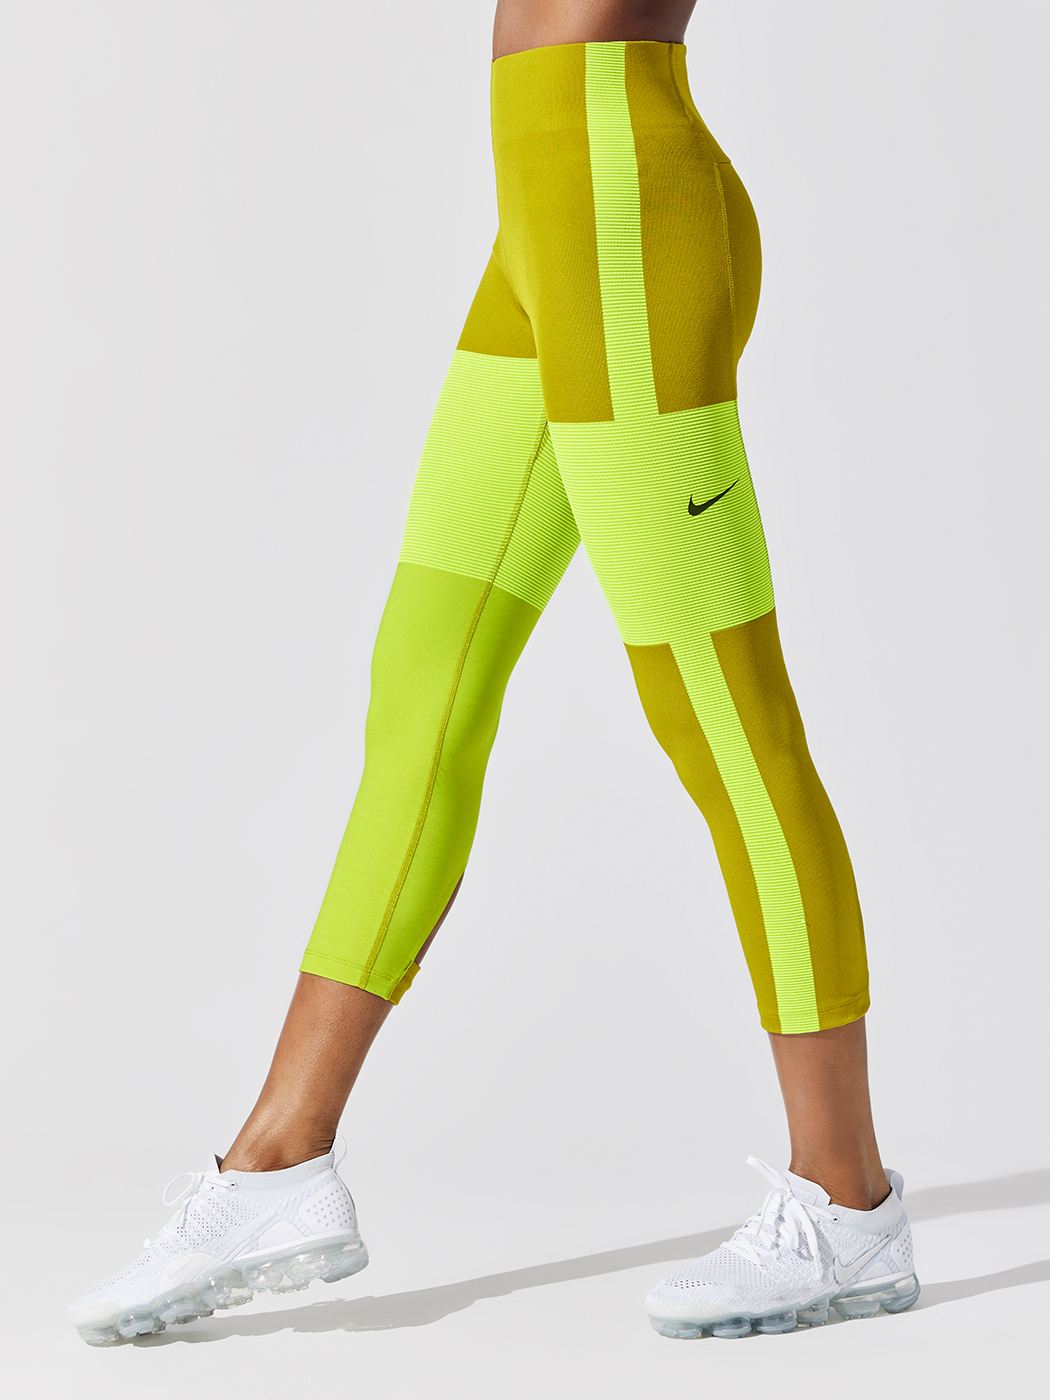 Tech Pack Leggings in Moss/volt/(reflect Black) Tech